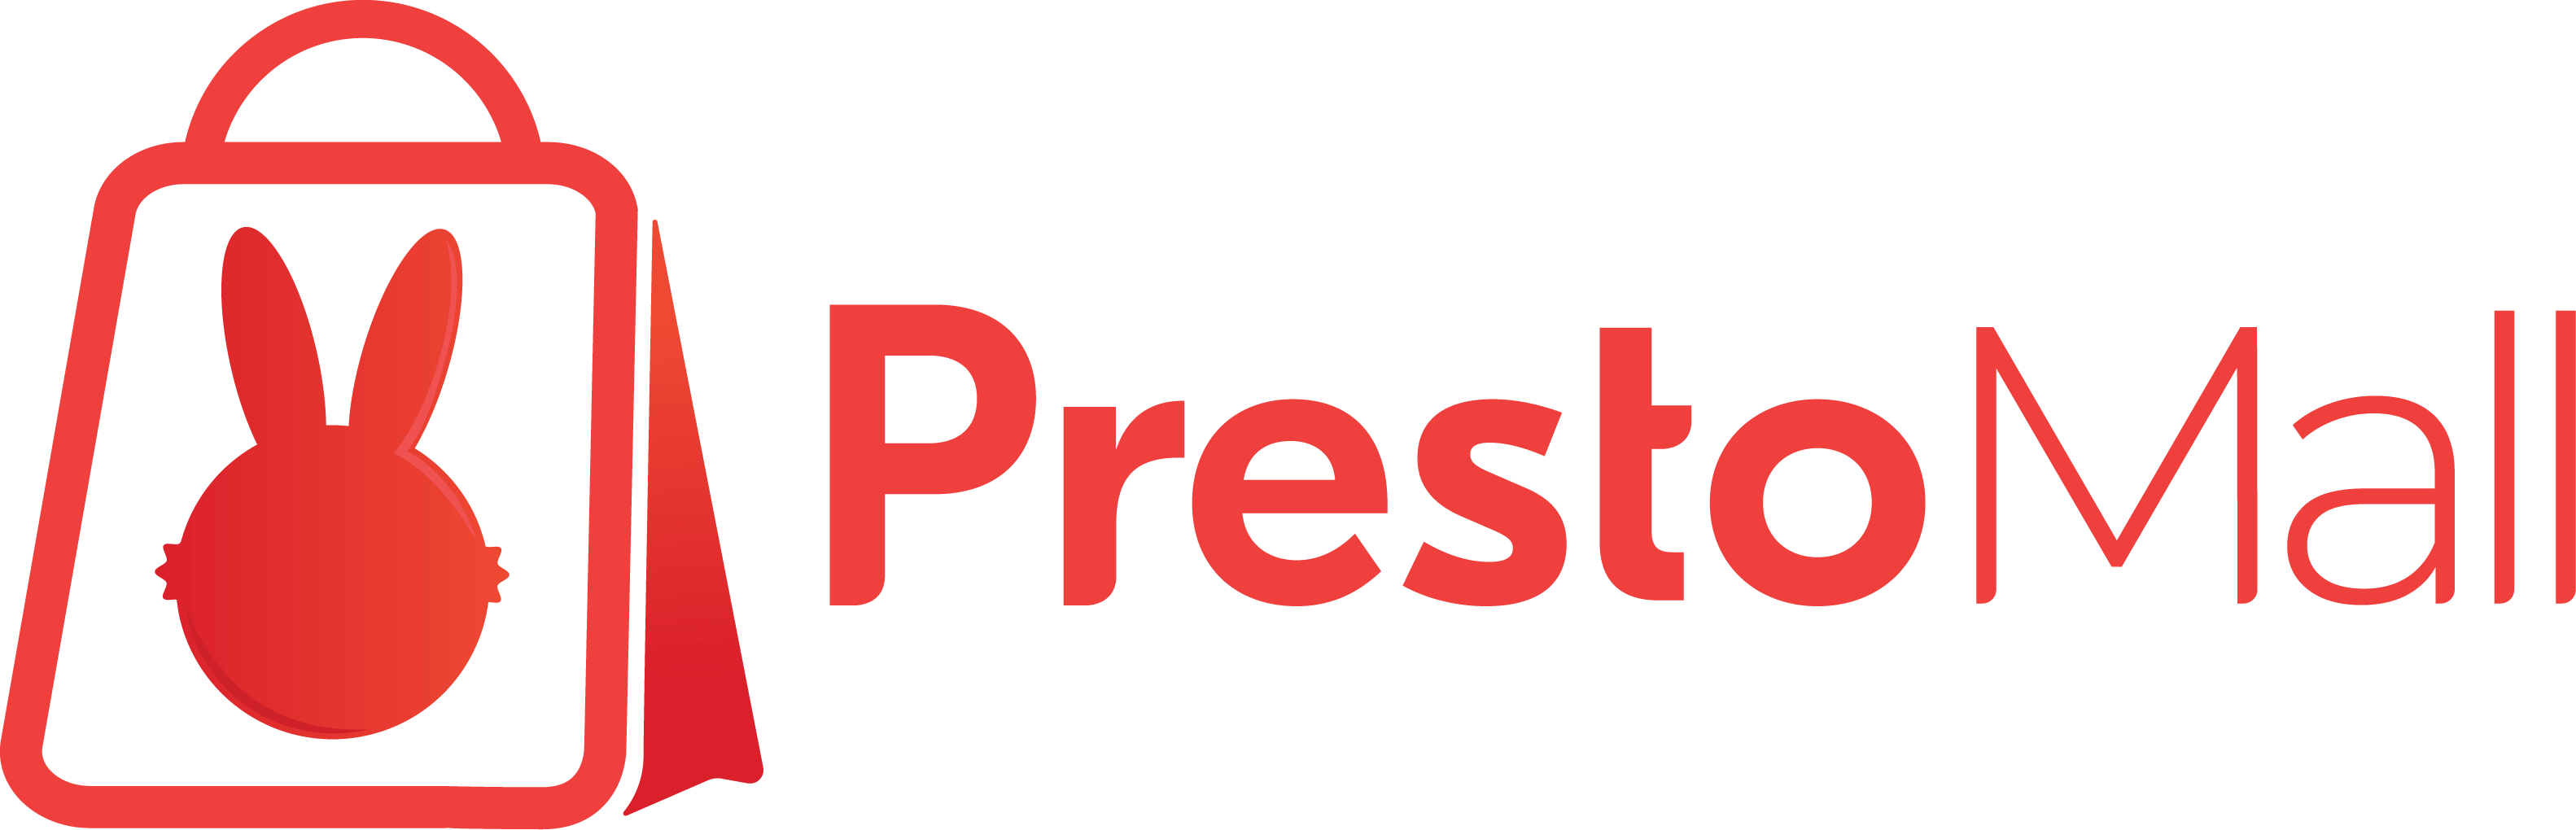 Prestomall Mobile App Promotions & Discounts